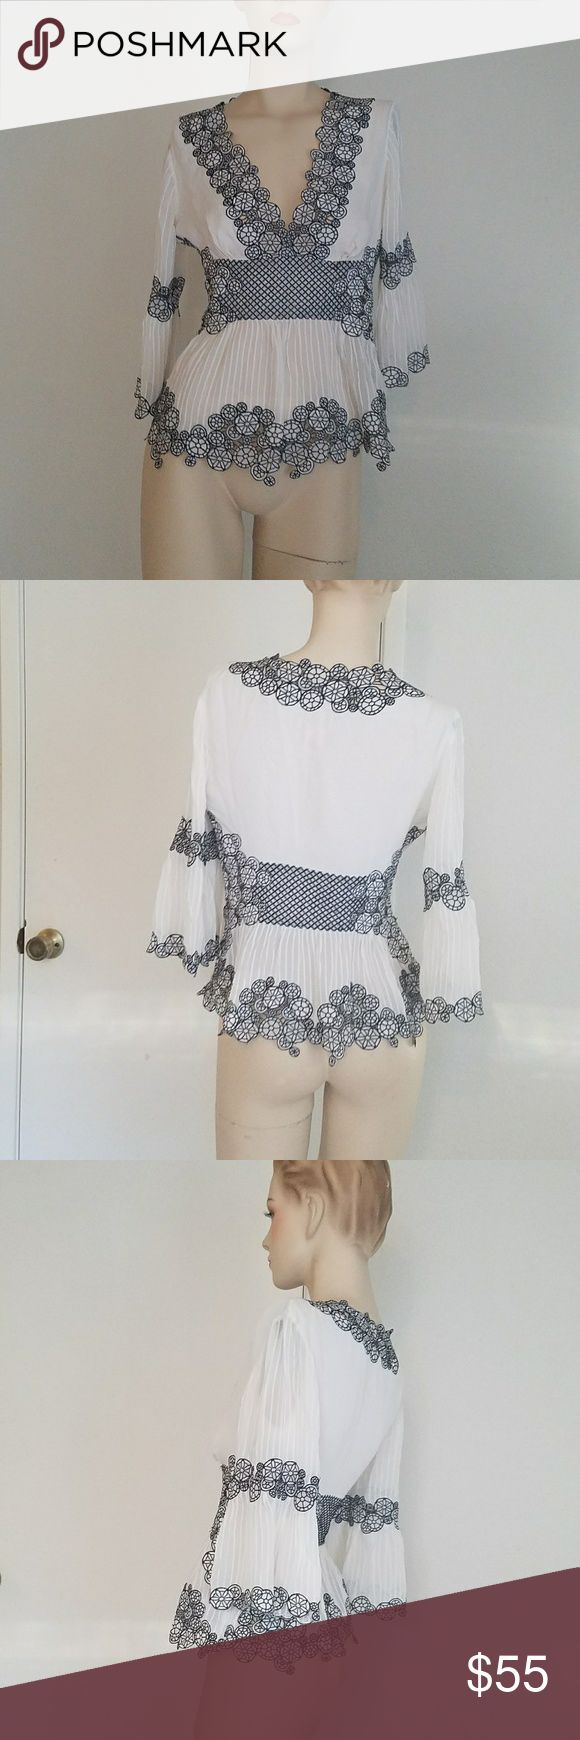 Catherine malandrino embroided Top sz 6 Like new sz 6 but it runs small so i will list as size 4.  Tag for exposure: bebe bcbg Anthropologie Gucci versace, antonio melani, valentino, free people, luxxel Catherine Malandrino Tops Blouses